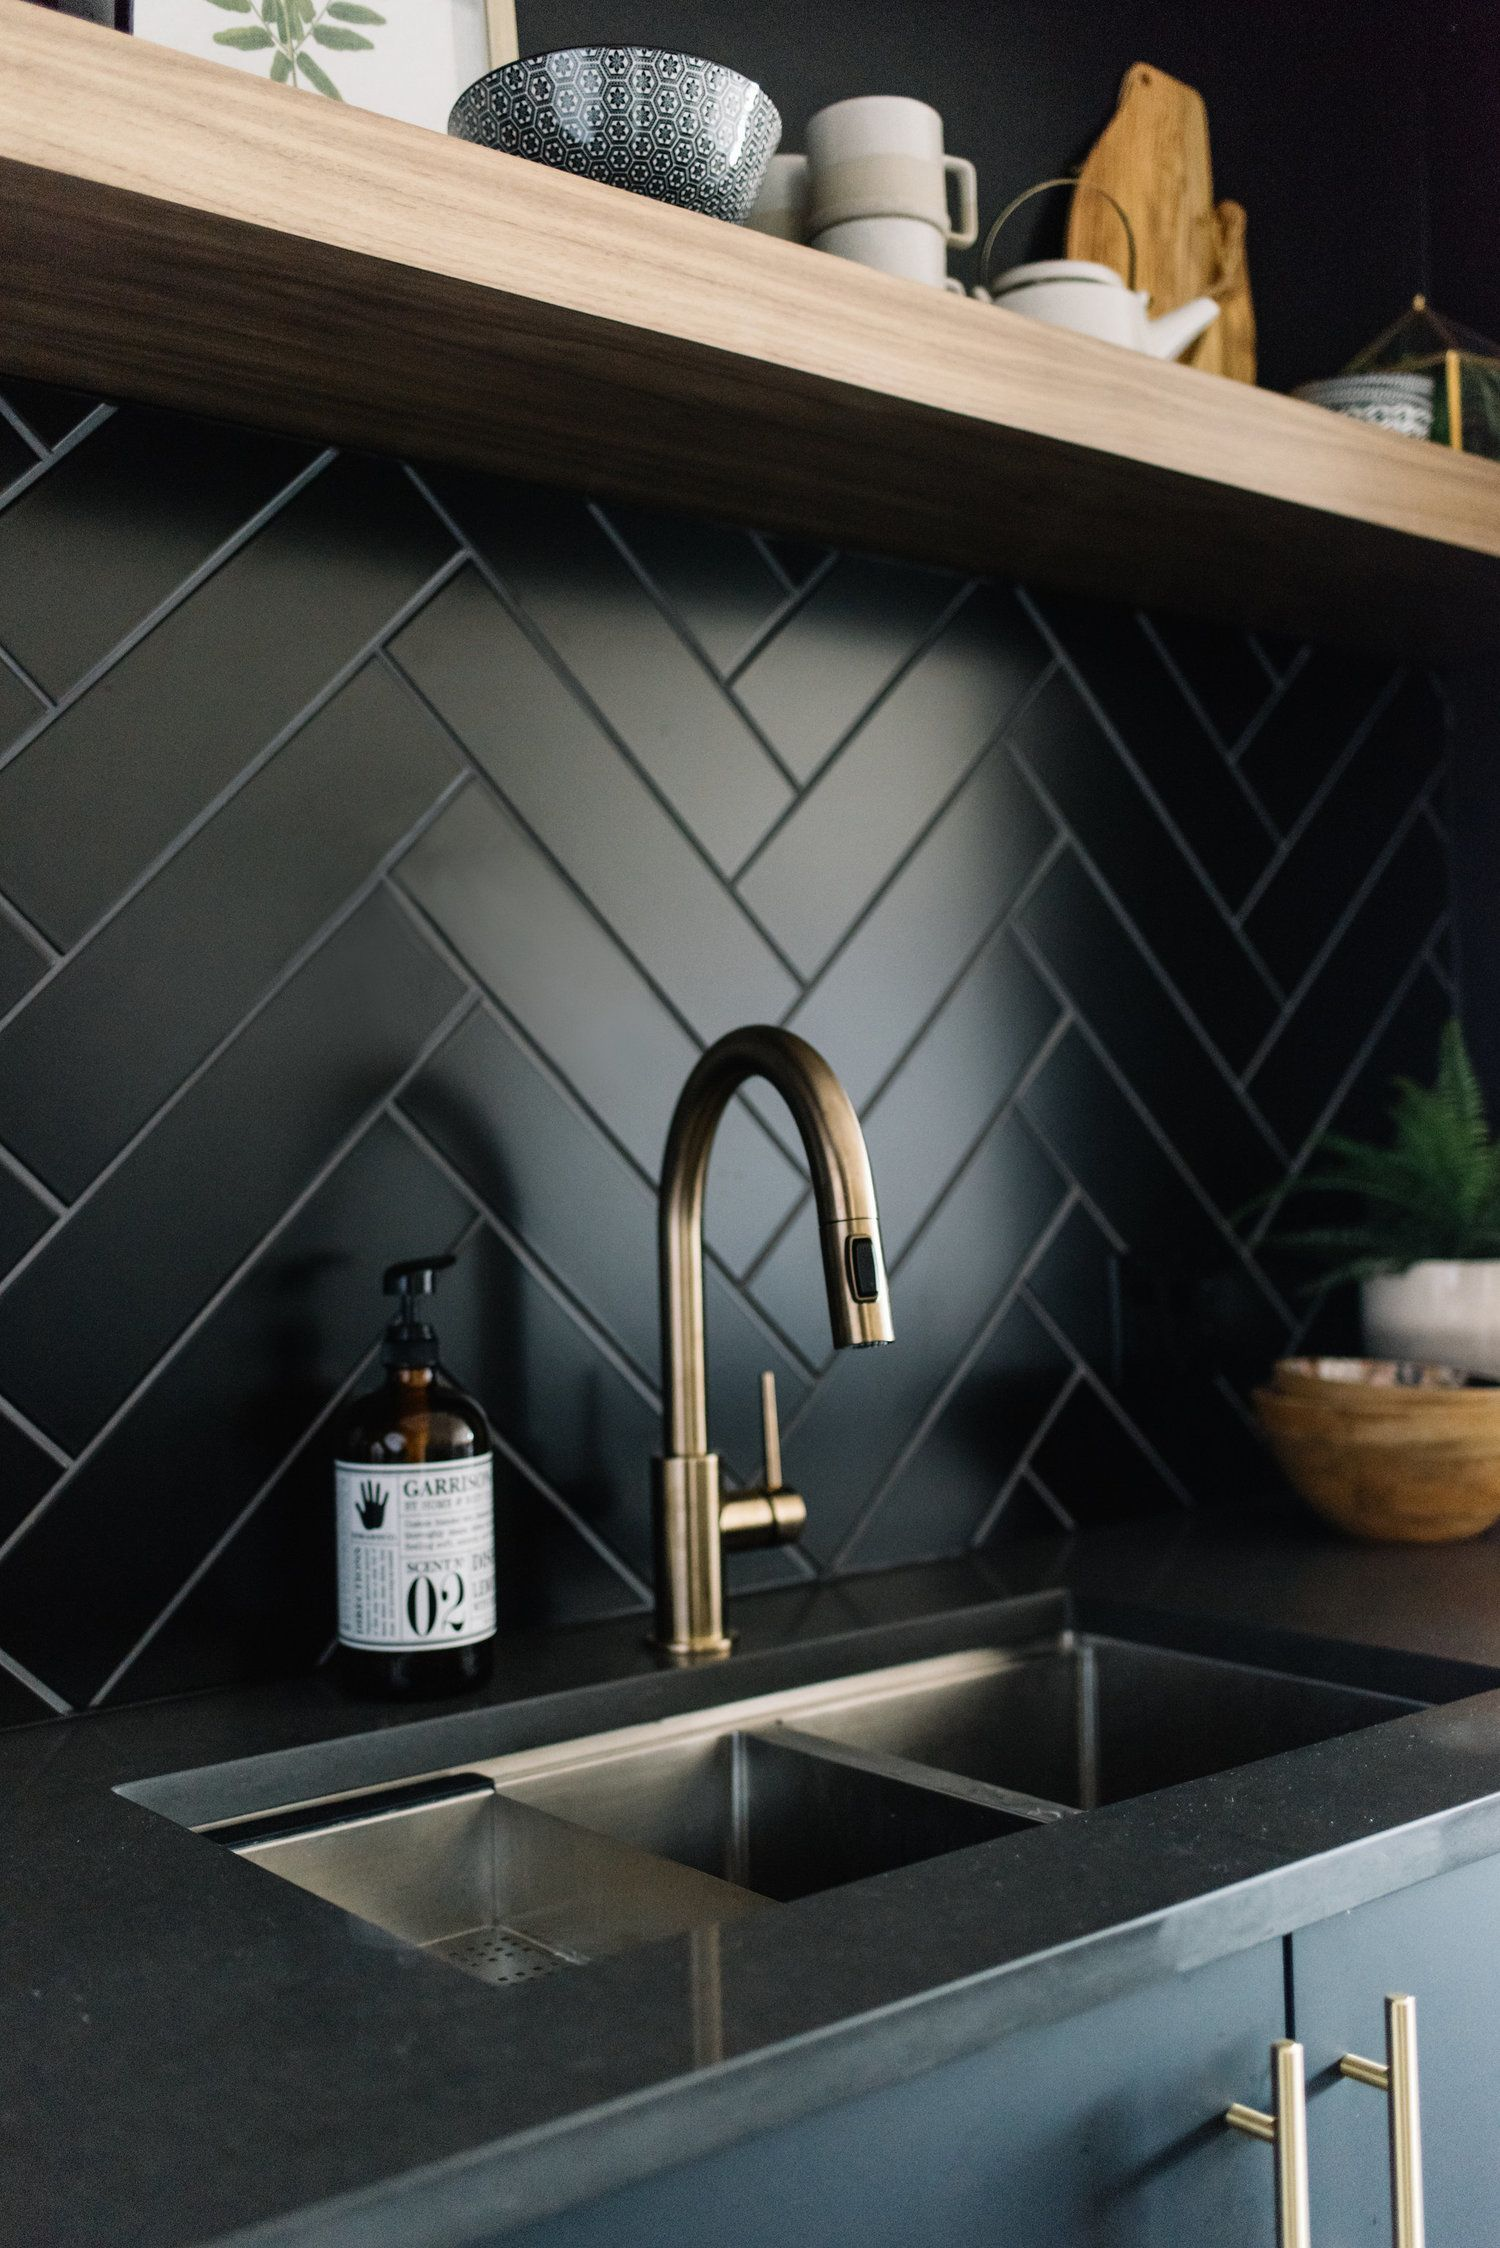 7+ Interesting Bathroom Backsplash Ideas - Design Ideas To Inspire You #interiordesignkitchen